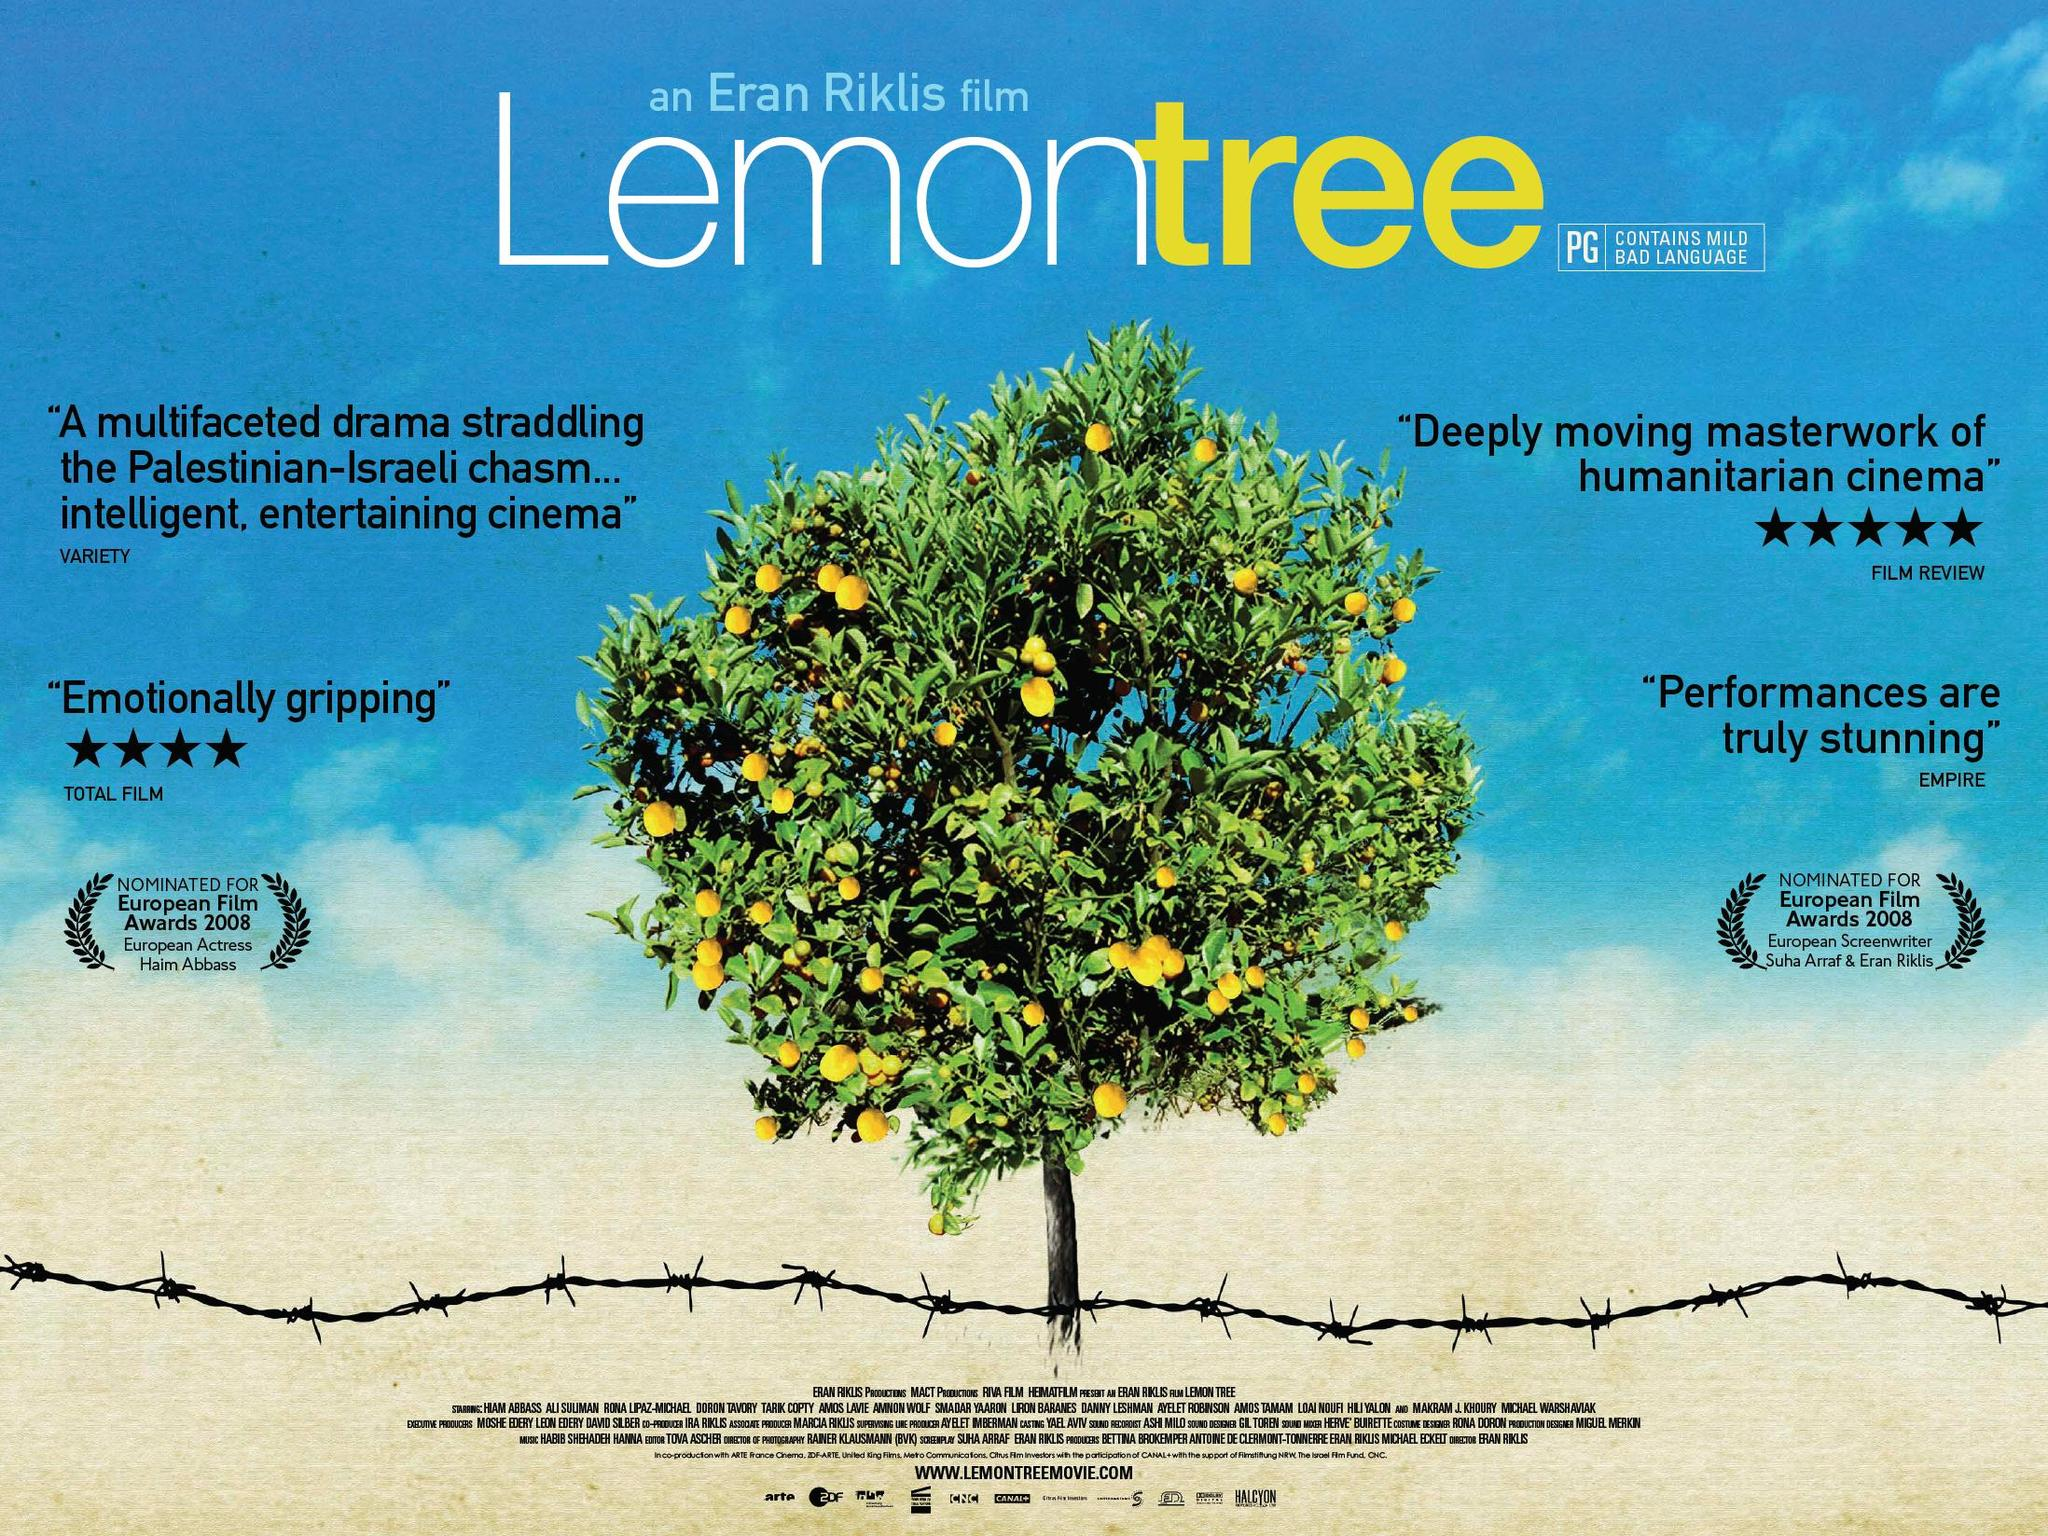 Set in the West Bank, where Palestinian widow Salma Zidane tends her lemon grove. However, when Israeli Defense Minister Navon moves in across the way, his security guards demand she removes the trees, which could shelter terrorists. Refusing to bow down, she engages lawyer Ziad Daud to take her cas e to the Supreme Court, which brings international attention.